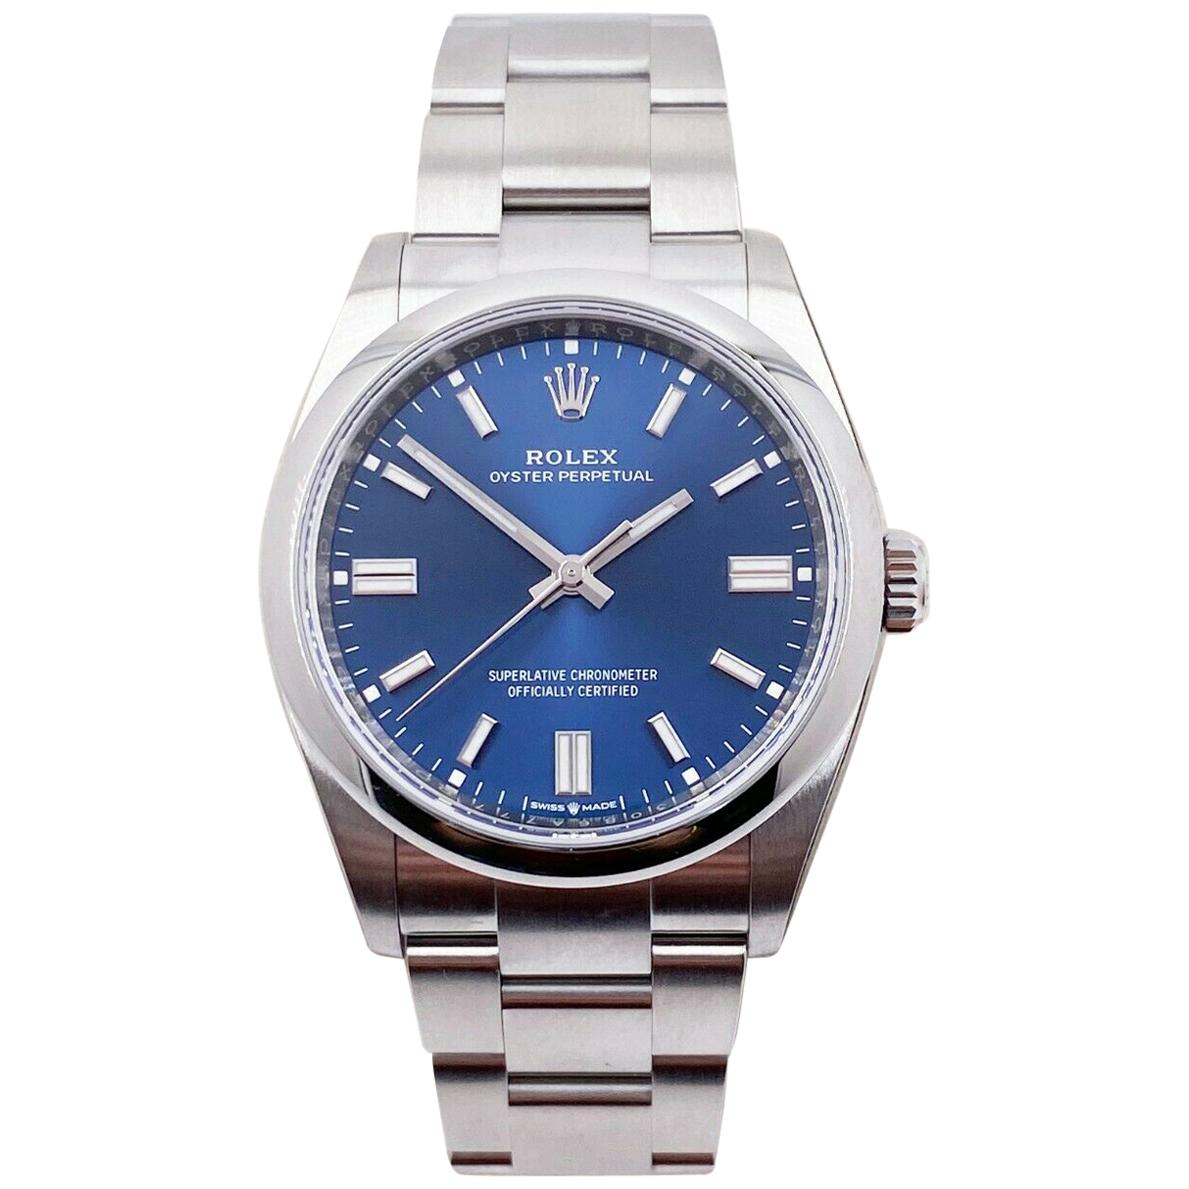 Rolex 126000 Oyster Perpetual Blue Dial Stainless Steel Box Paper 2020